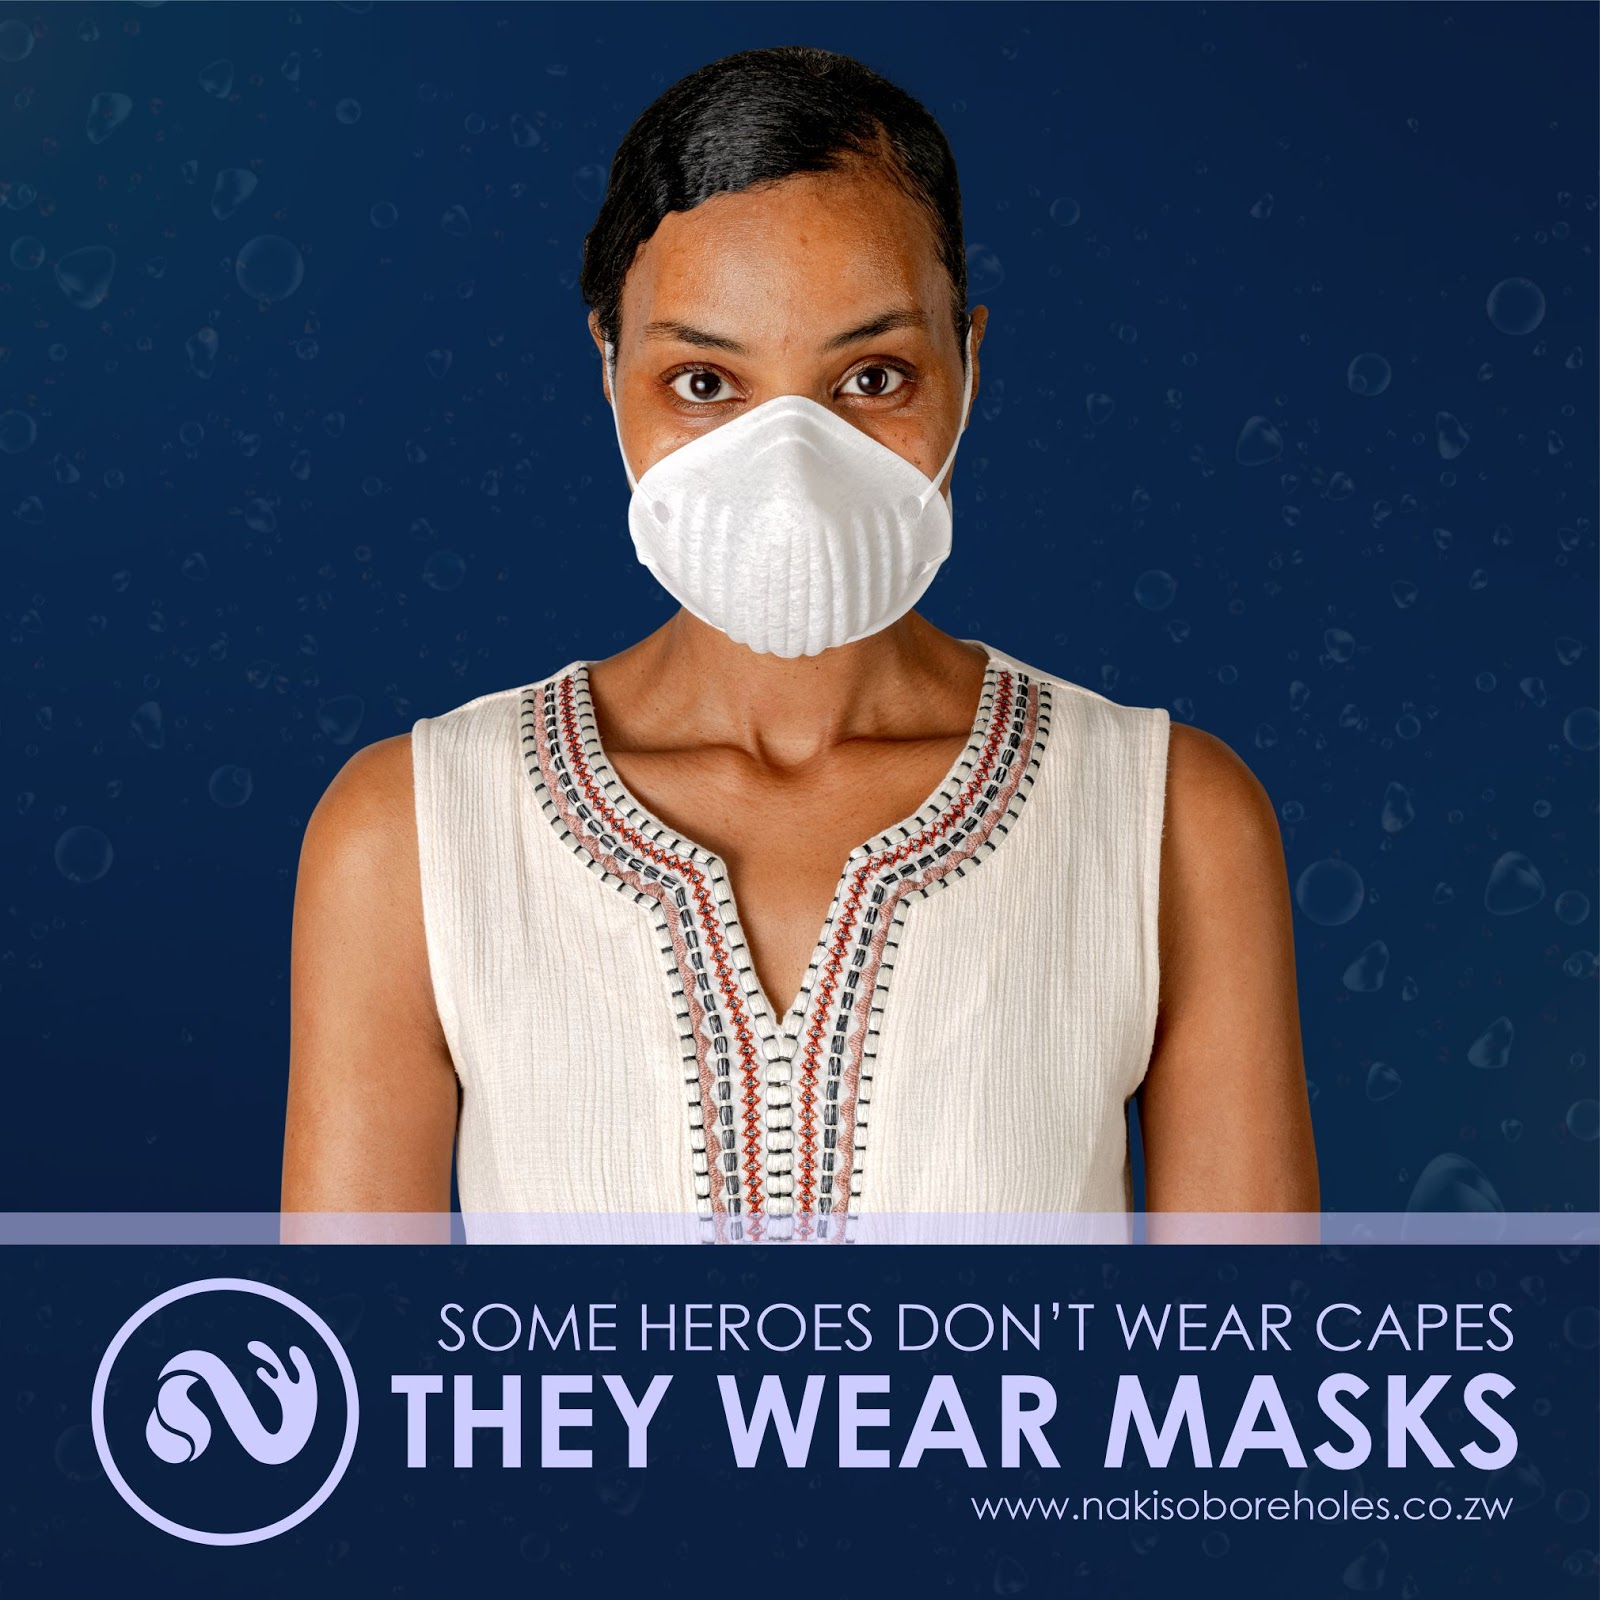 Some Heroes Don't Wear Capes, They Wear Masks